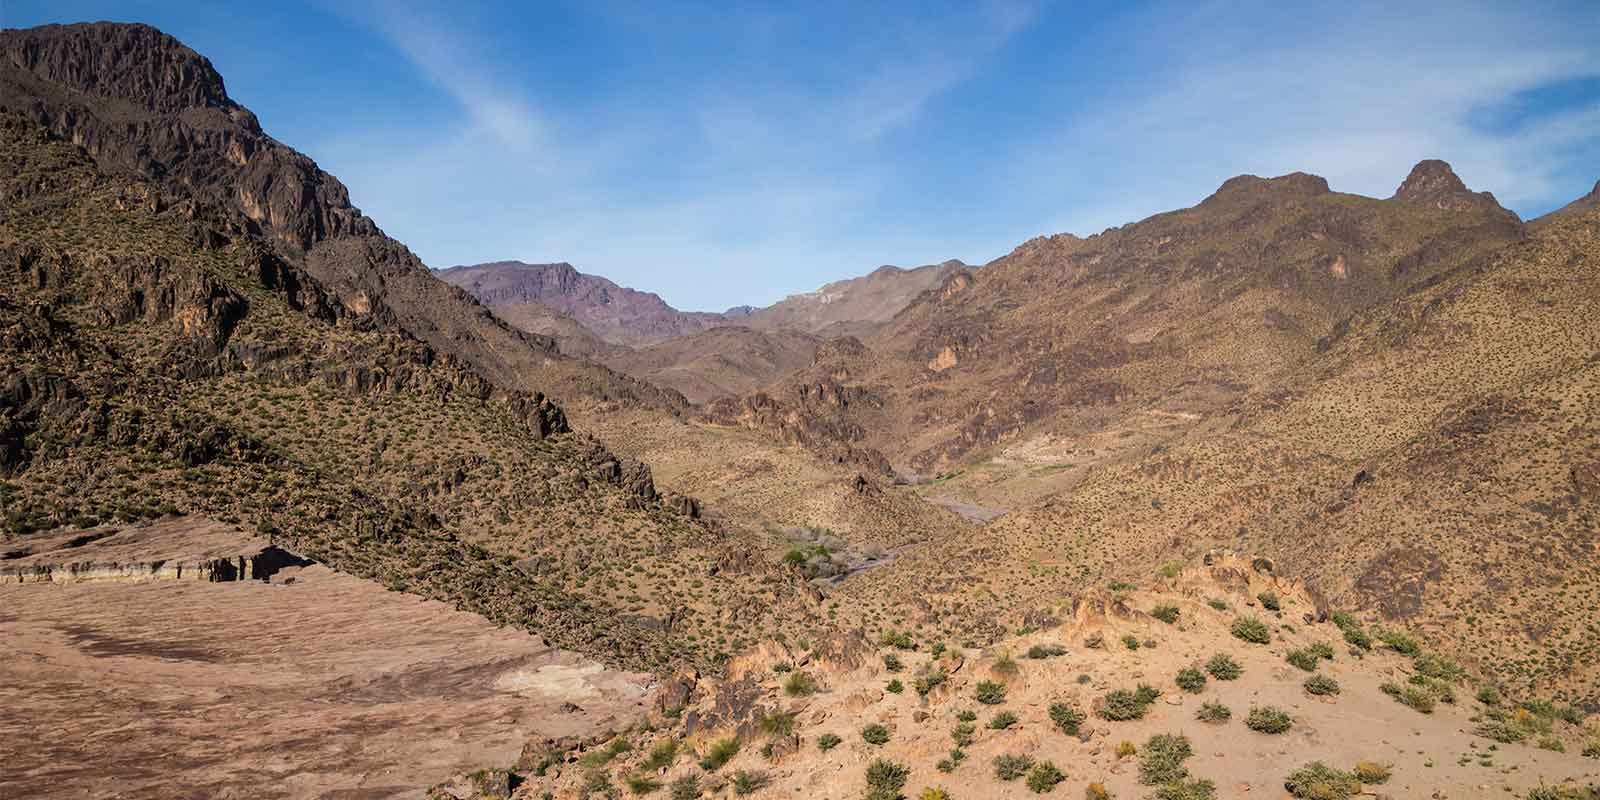 Scenic mountain range of Jebel Sahro looking down to valley road